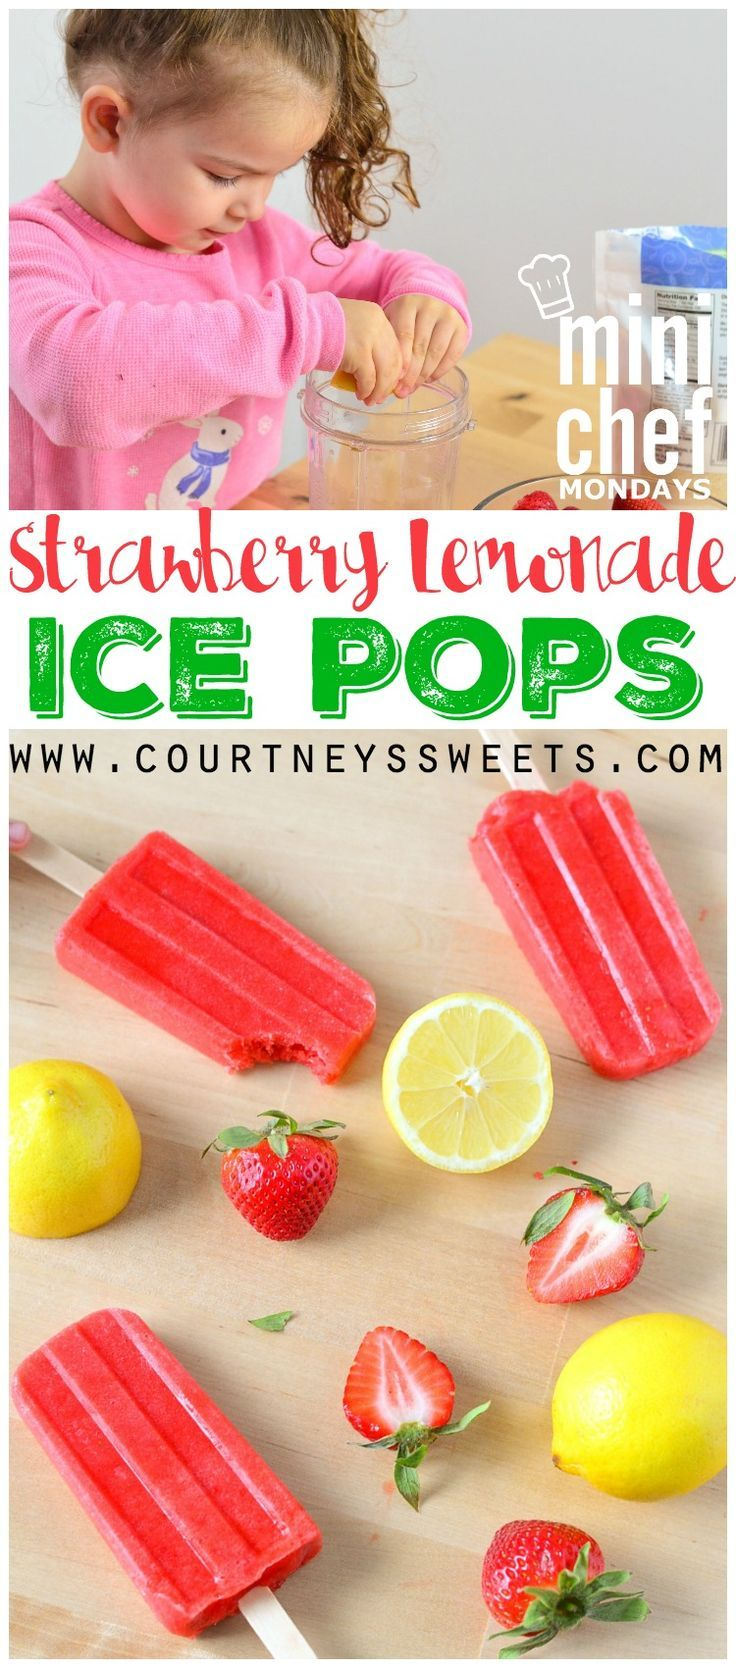 images about Popsicles & Ice Pops on Pinterest | Ice pops, Popsicles ...